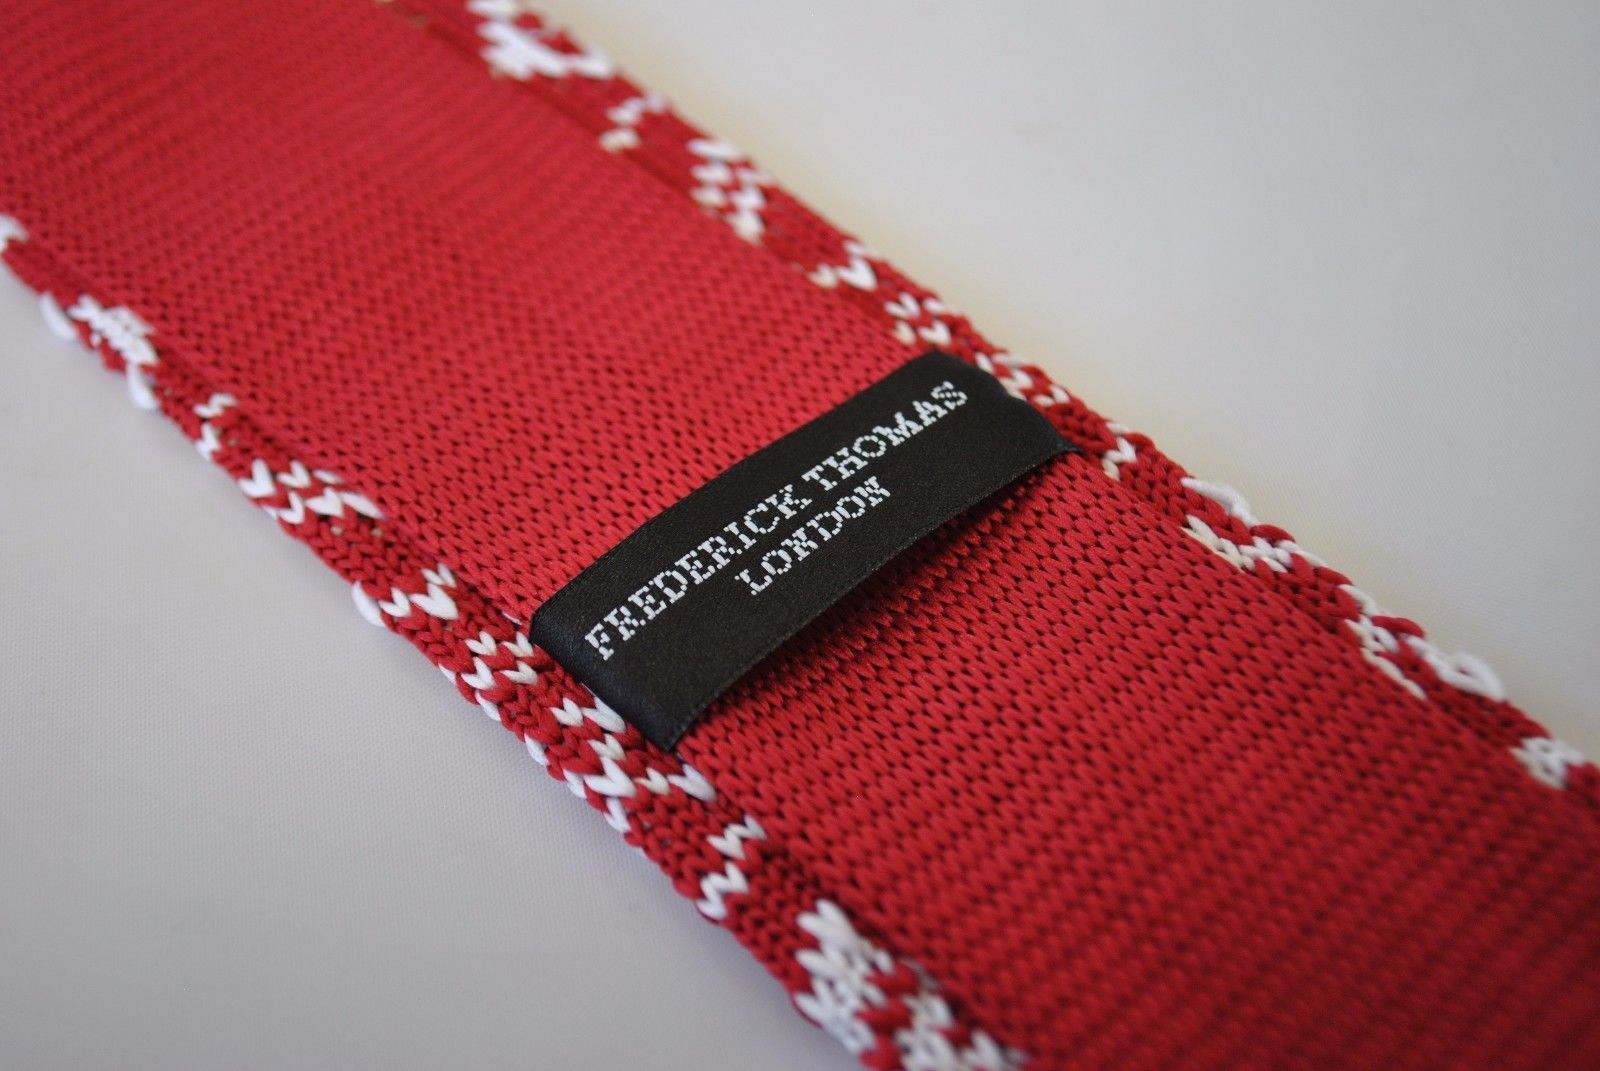 Frederick Thomas rot Skinny Weihnachts Pullover Style gestrickt ft2116